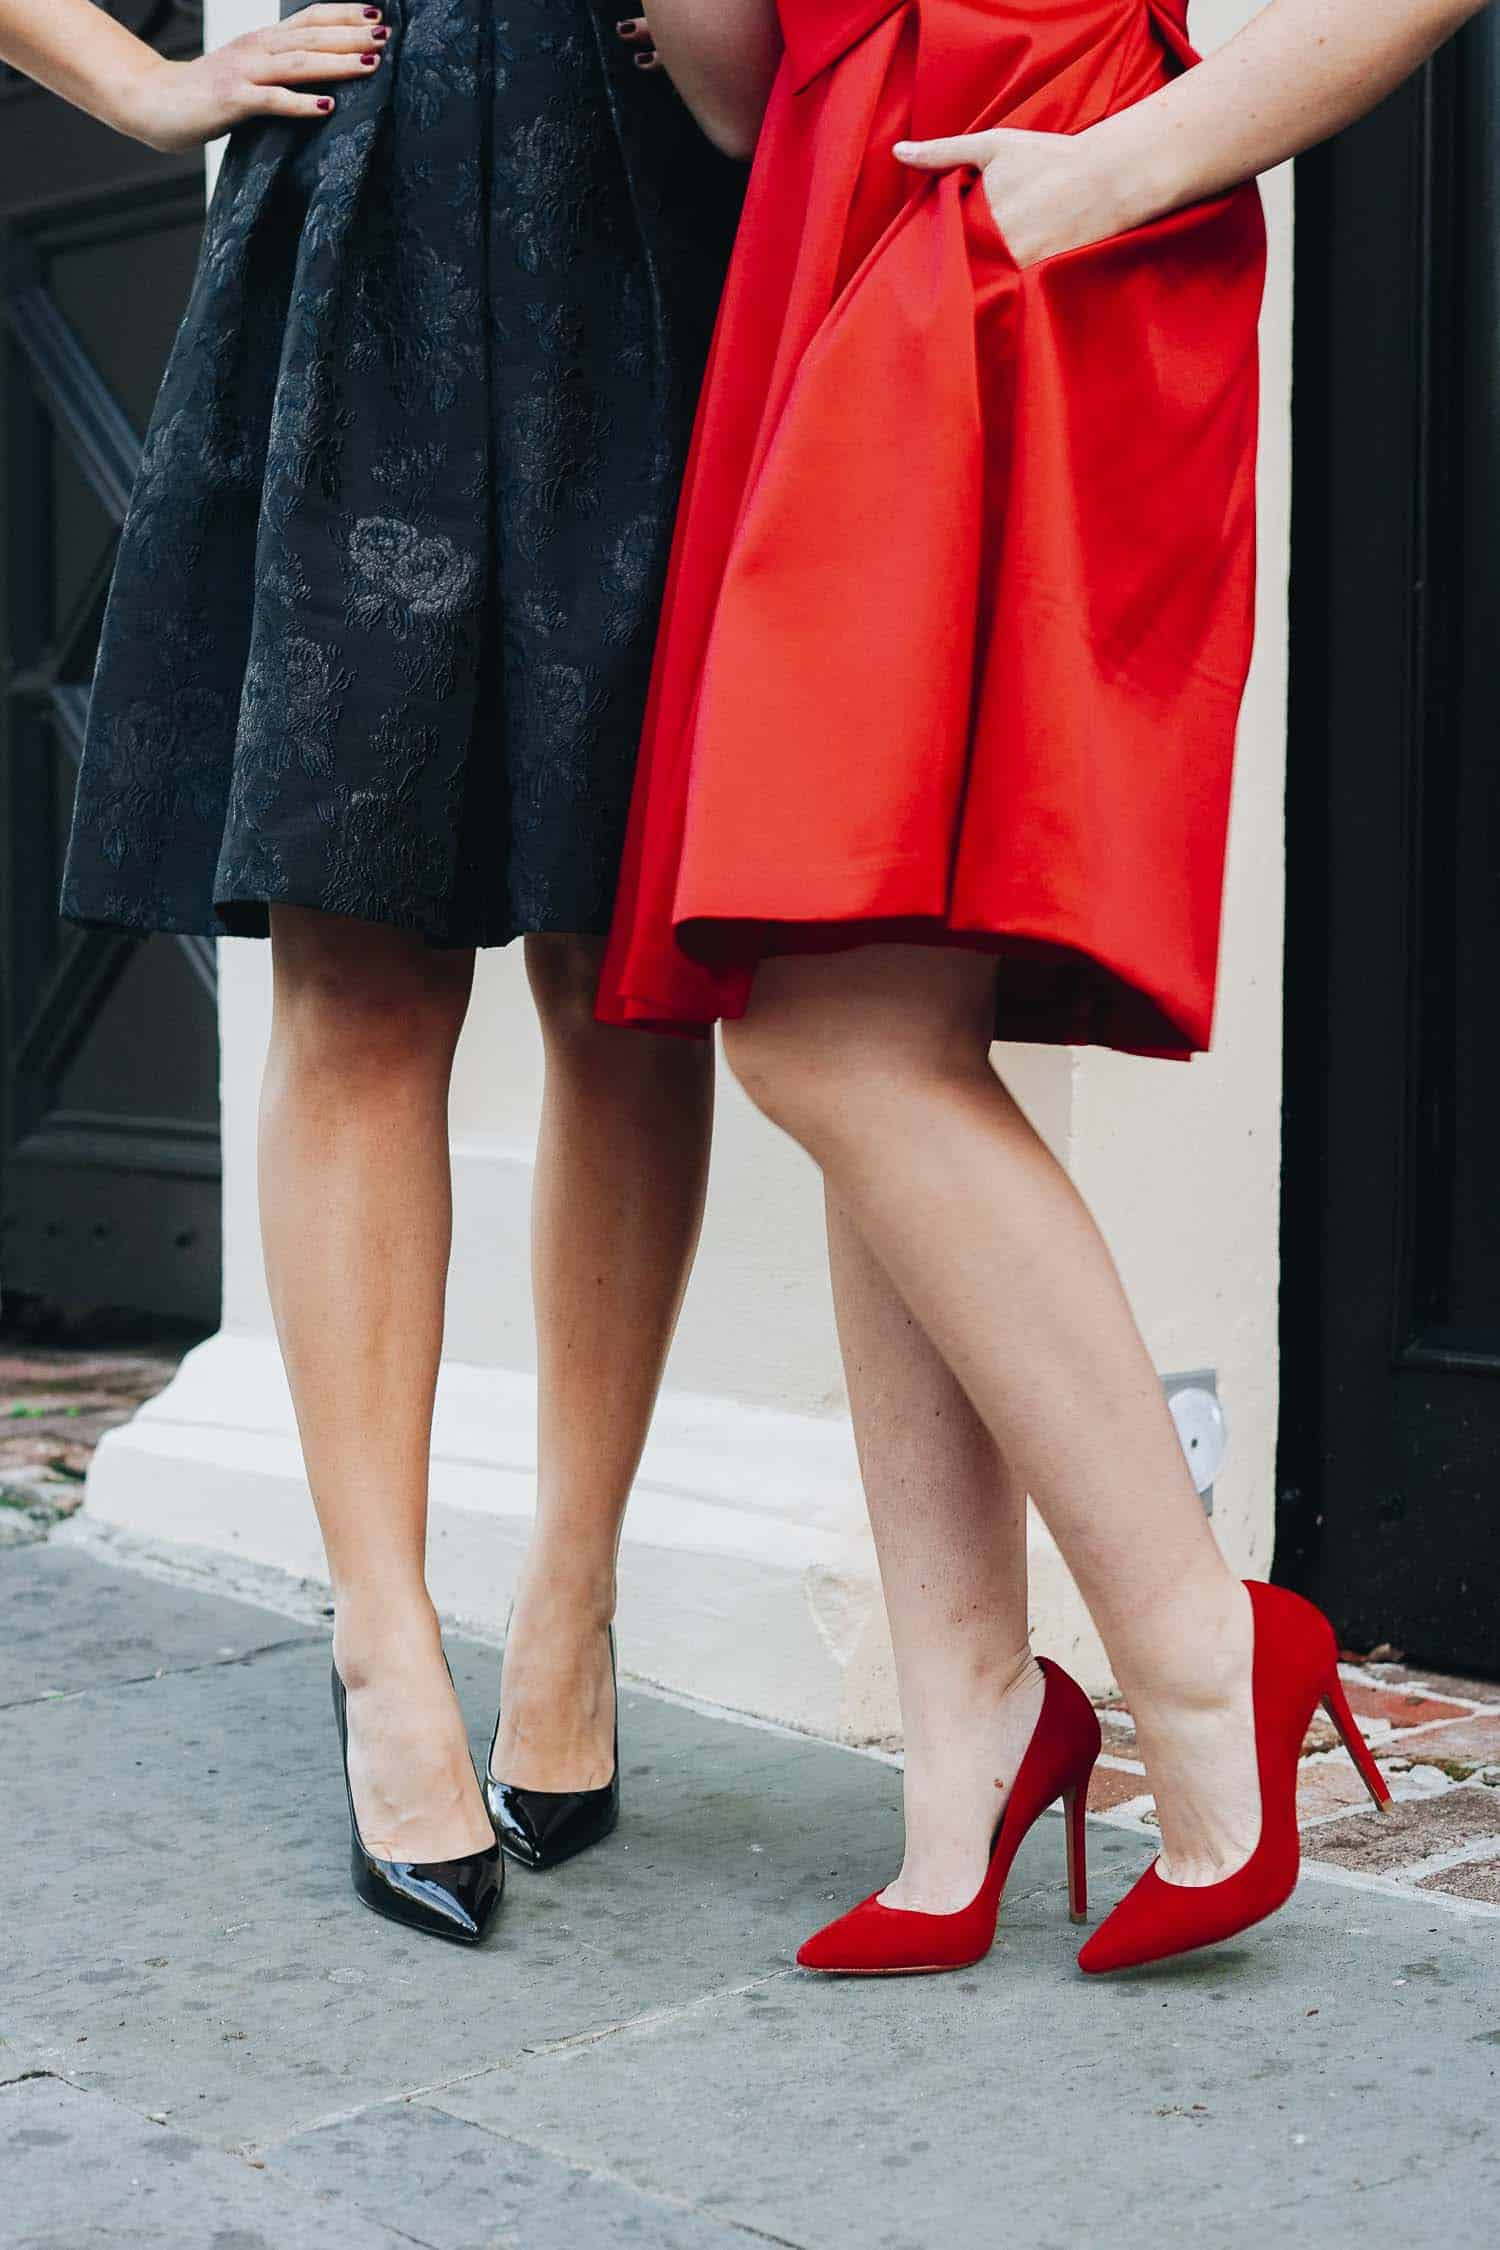 Black and Red - shoes and dress